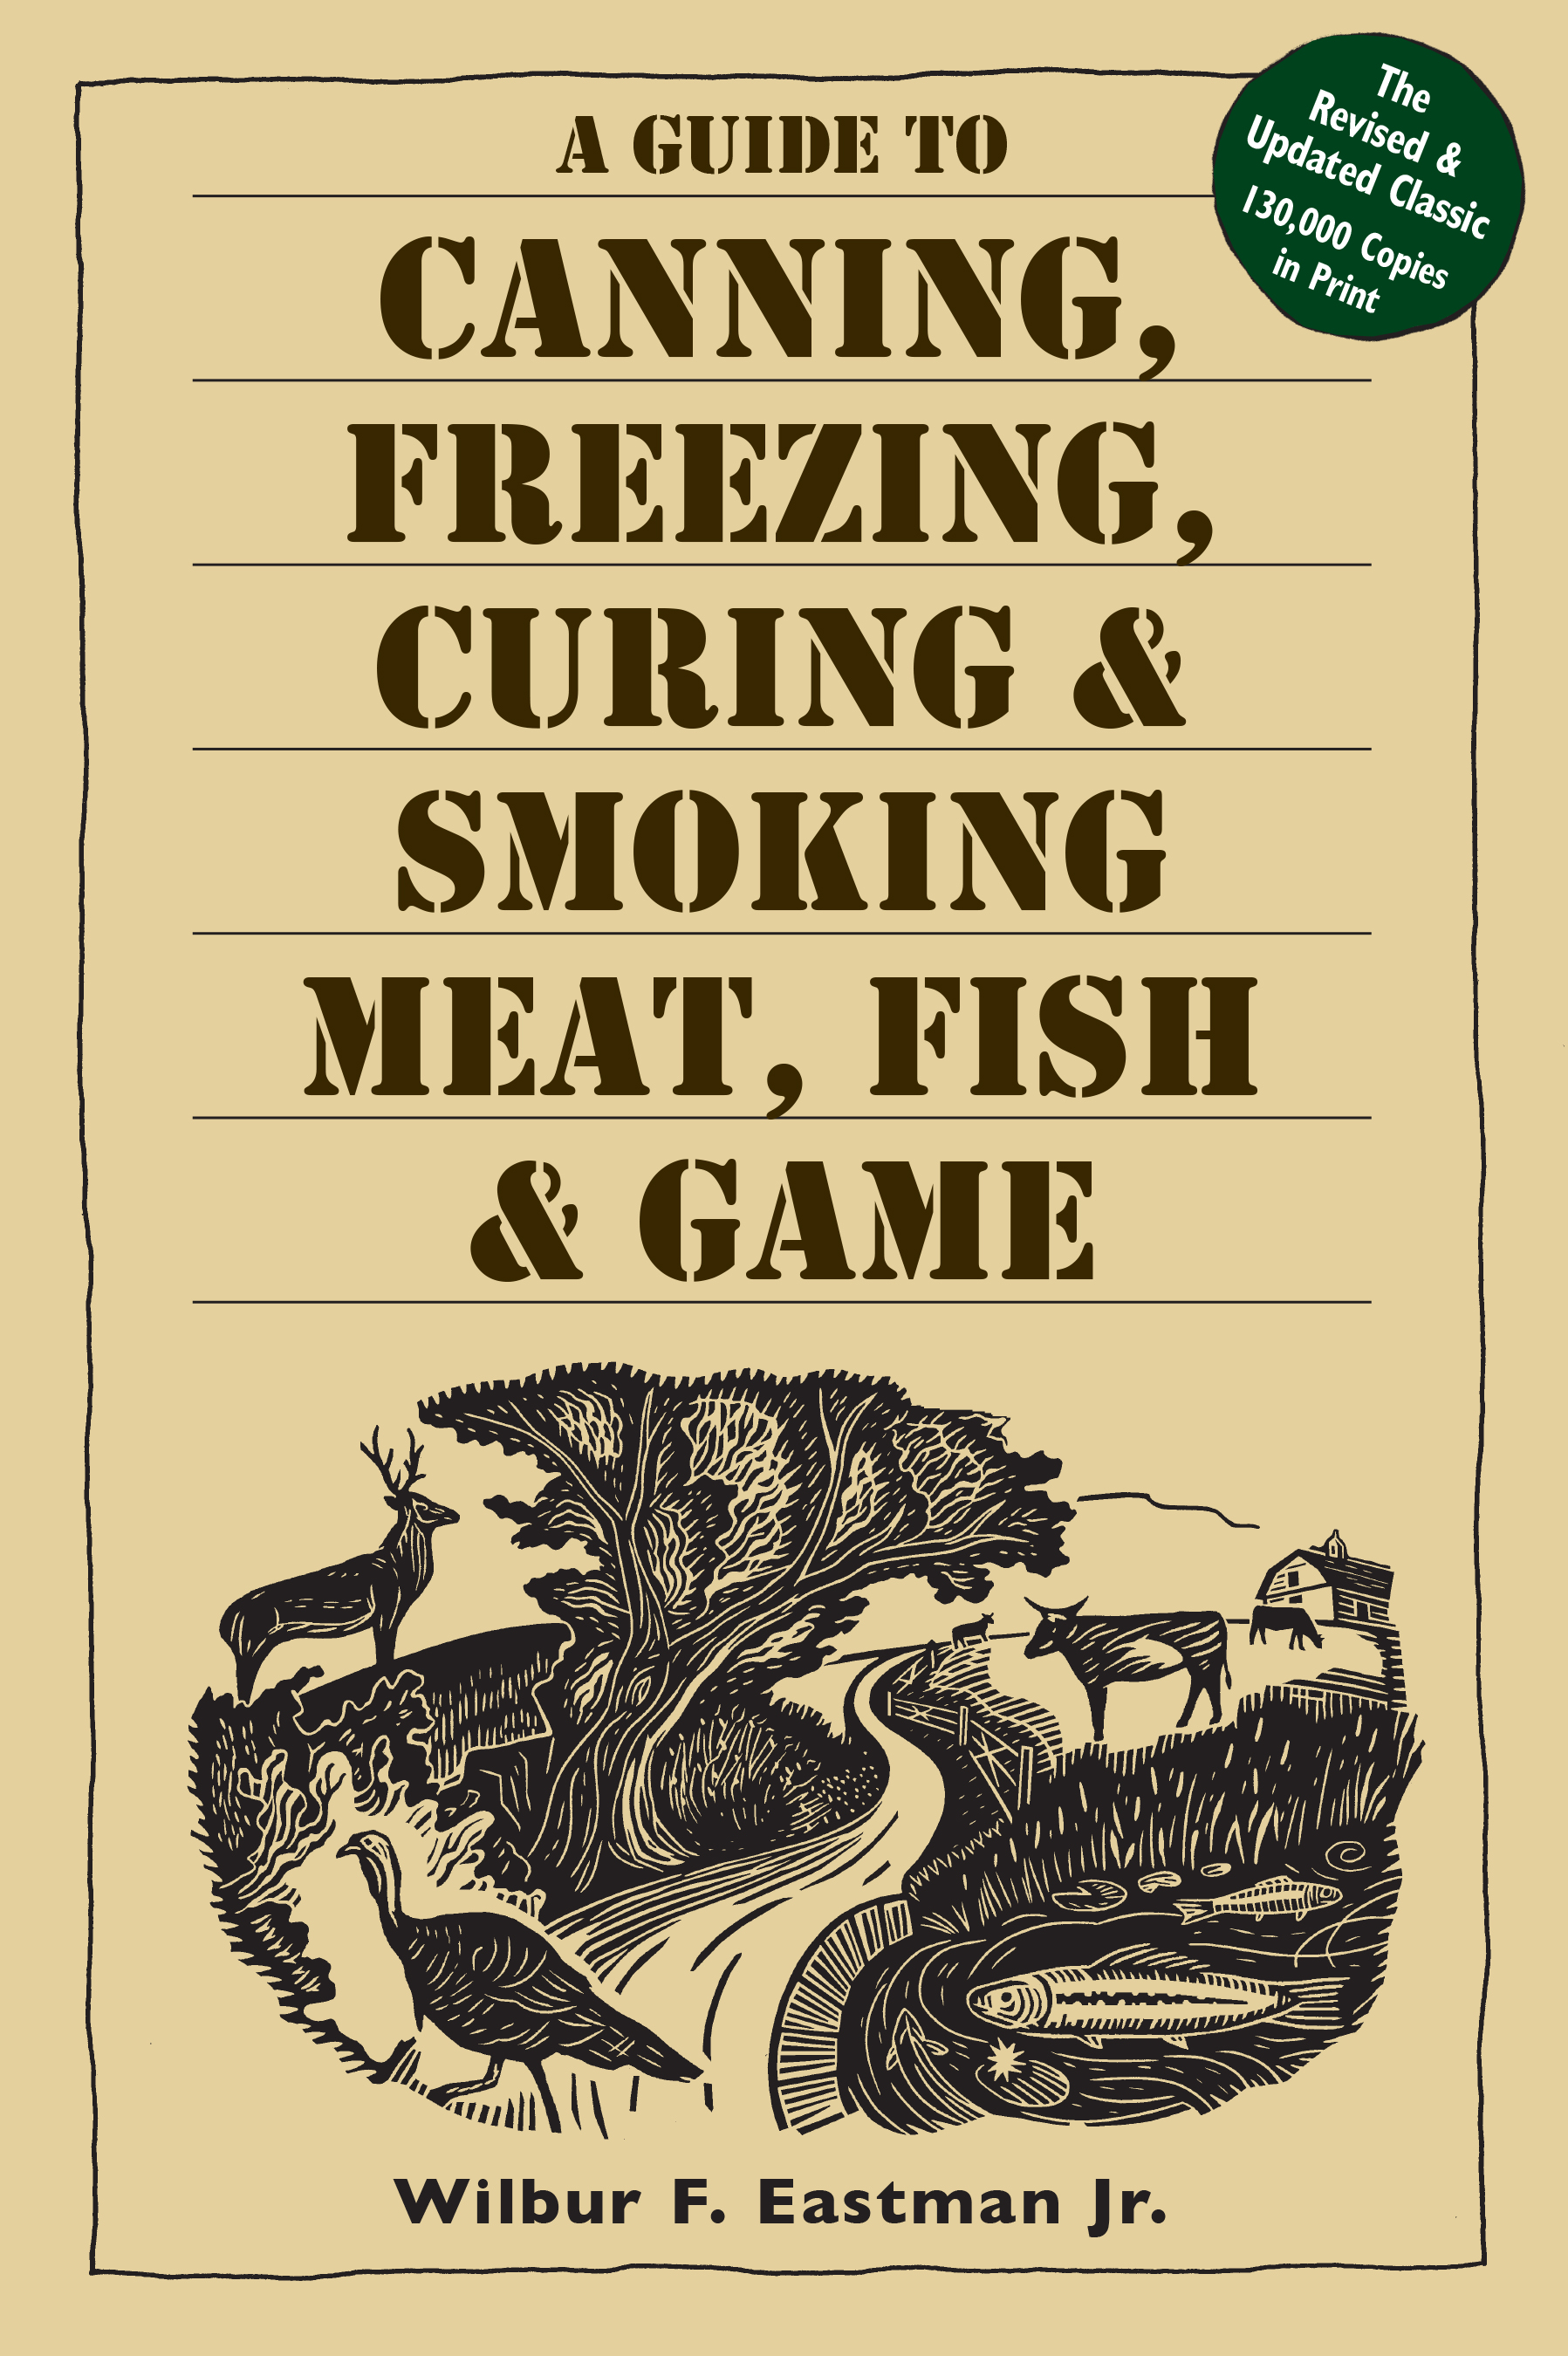 A Guide to Canning, Freezing, Curing & Smoking Meat, Fish & Game  - Wilbur F. Eastman, Jr.